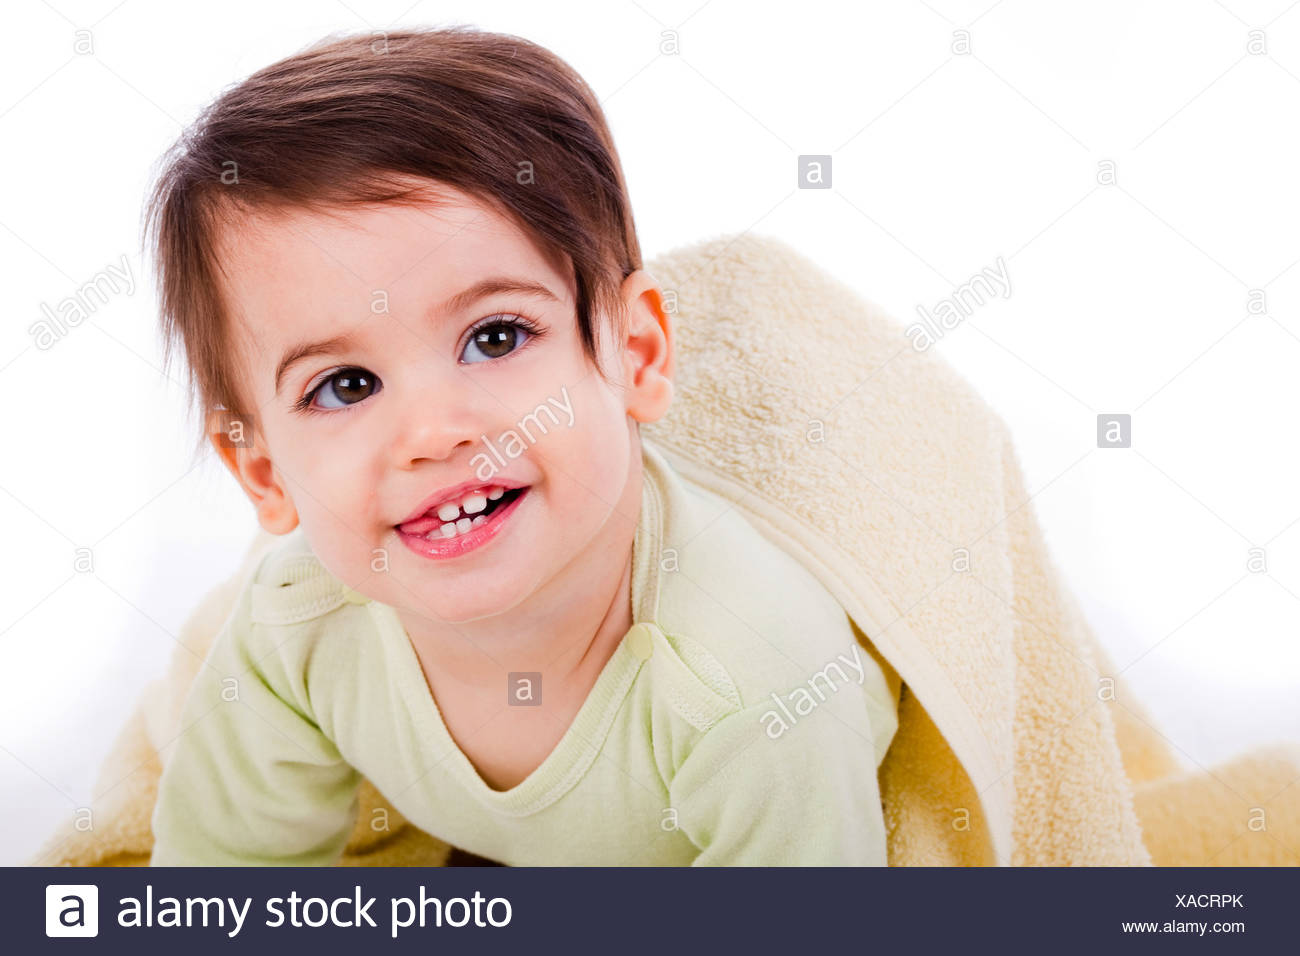 Infant crawling with towel and smiling with tounge out in a white background - Stock Image